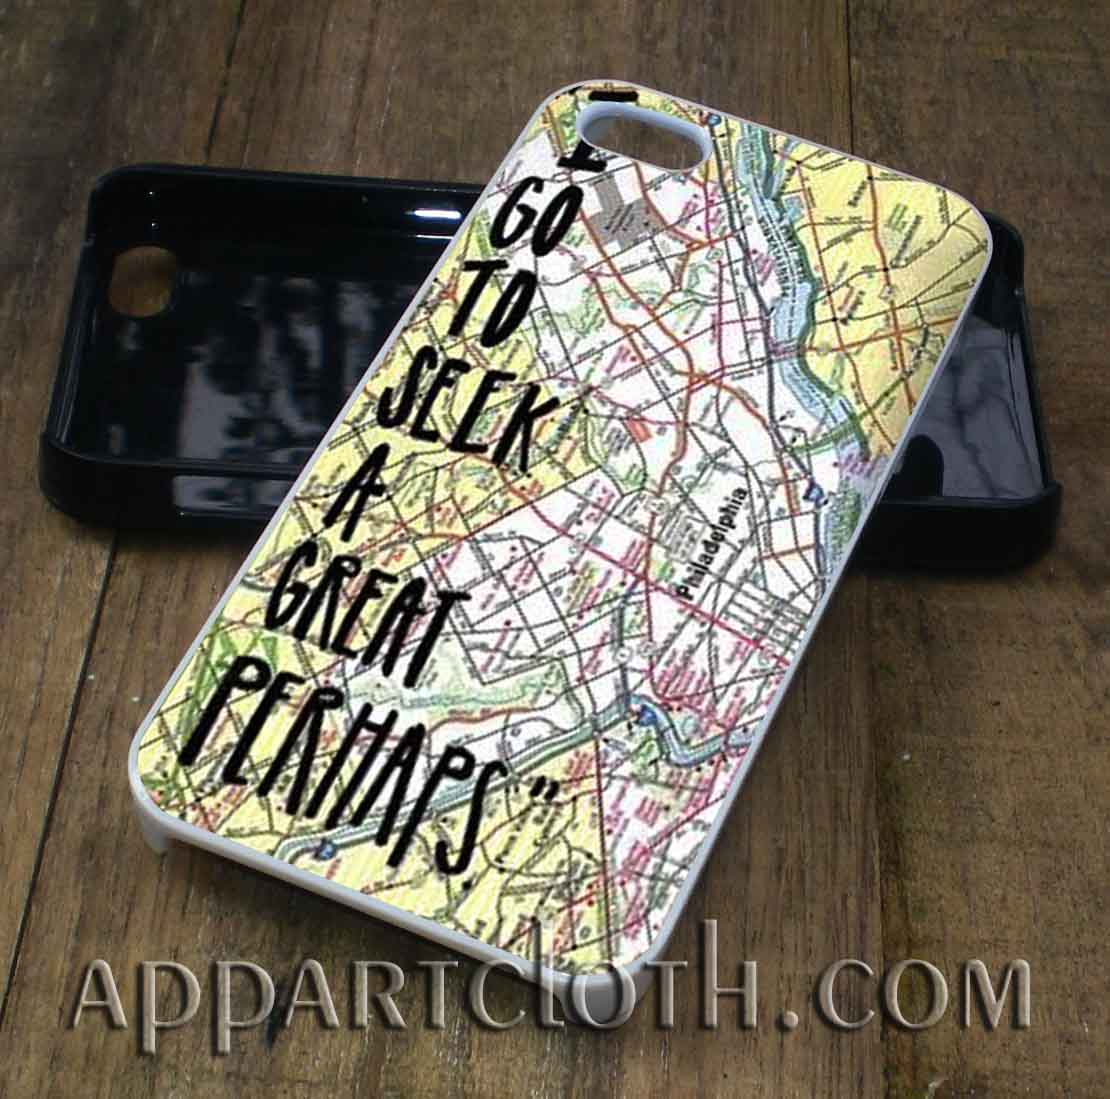 Looking for alaska quote john green phone case